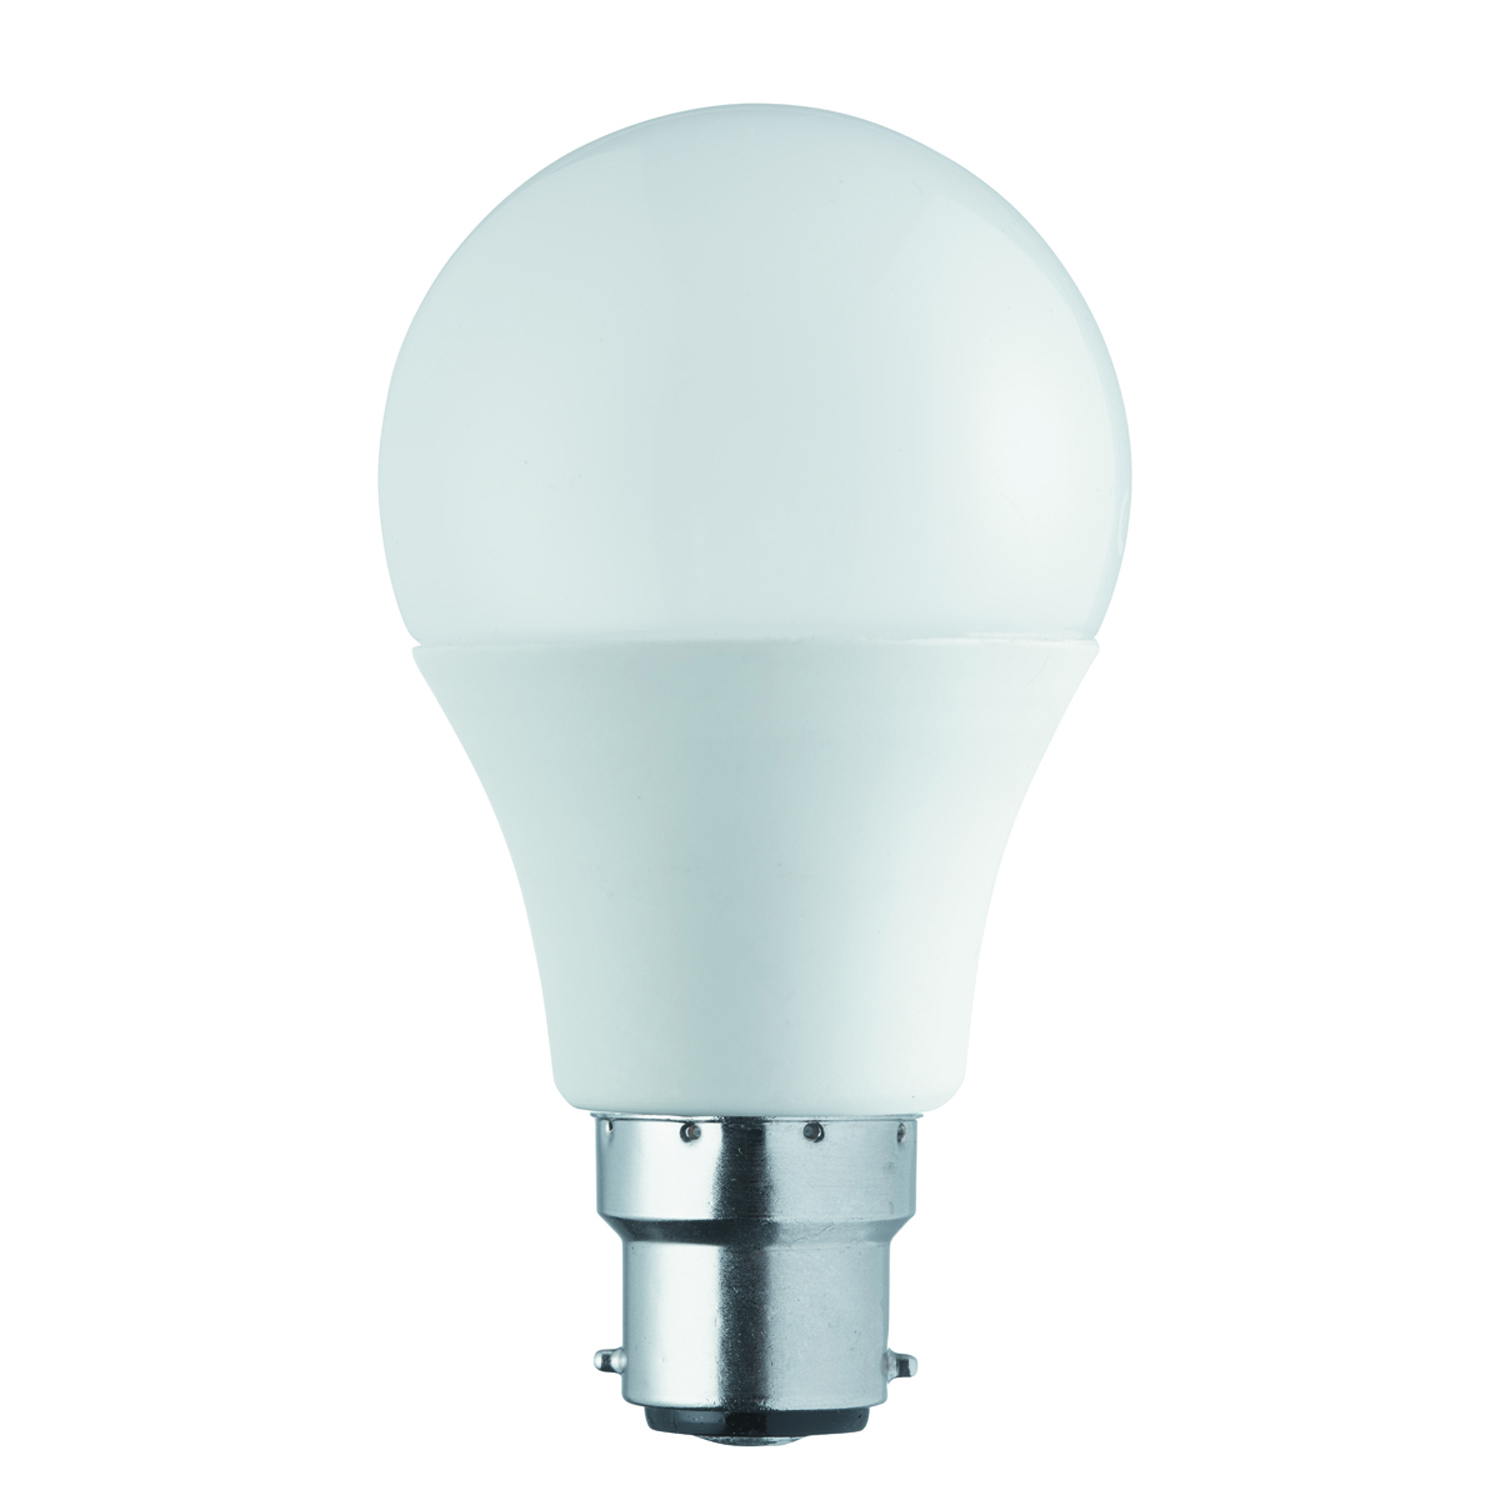 10w Led B22 Bulb 800 Lumens, Cool White